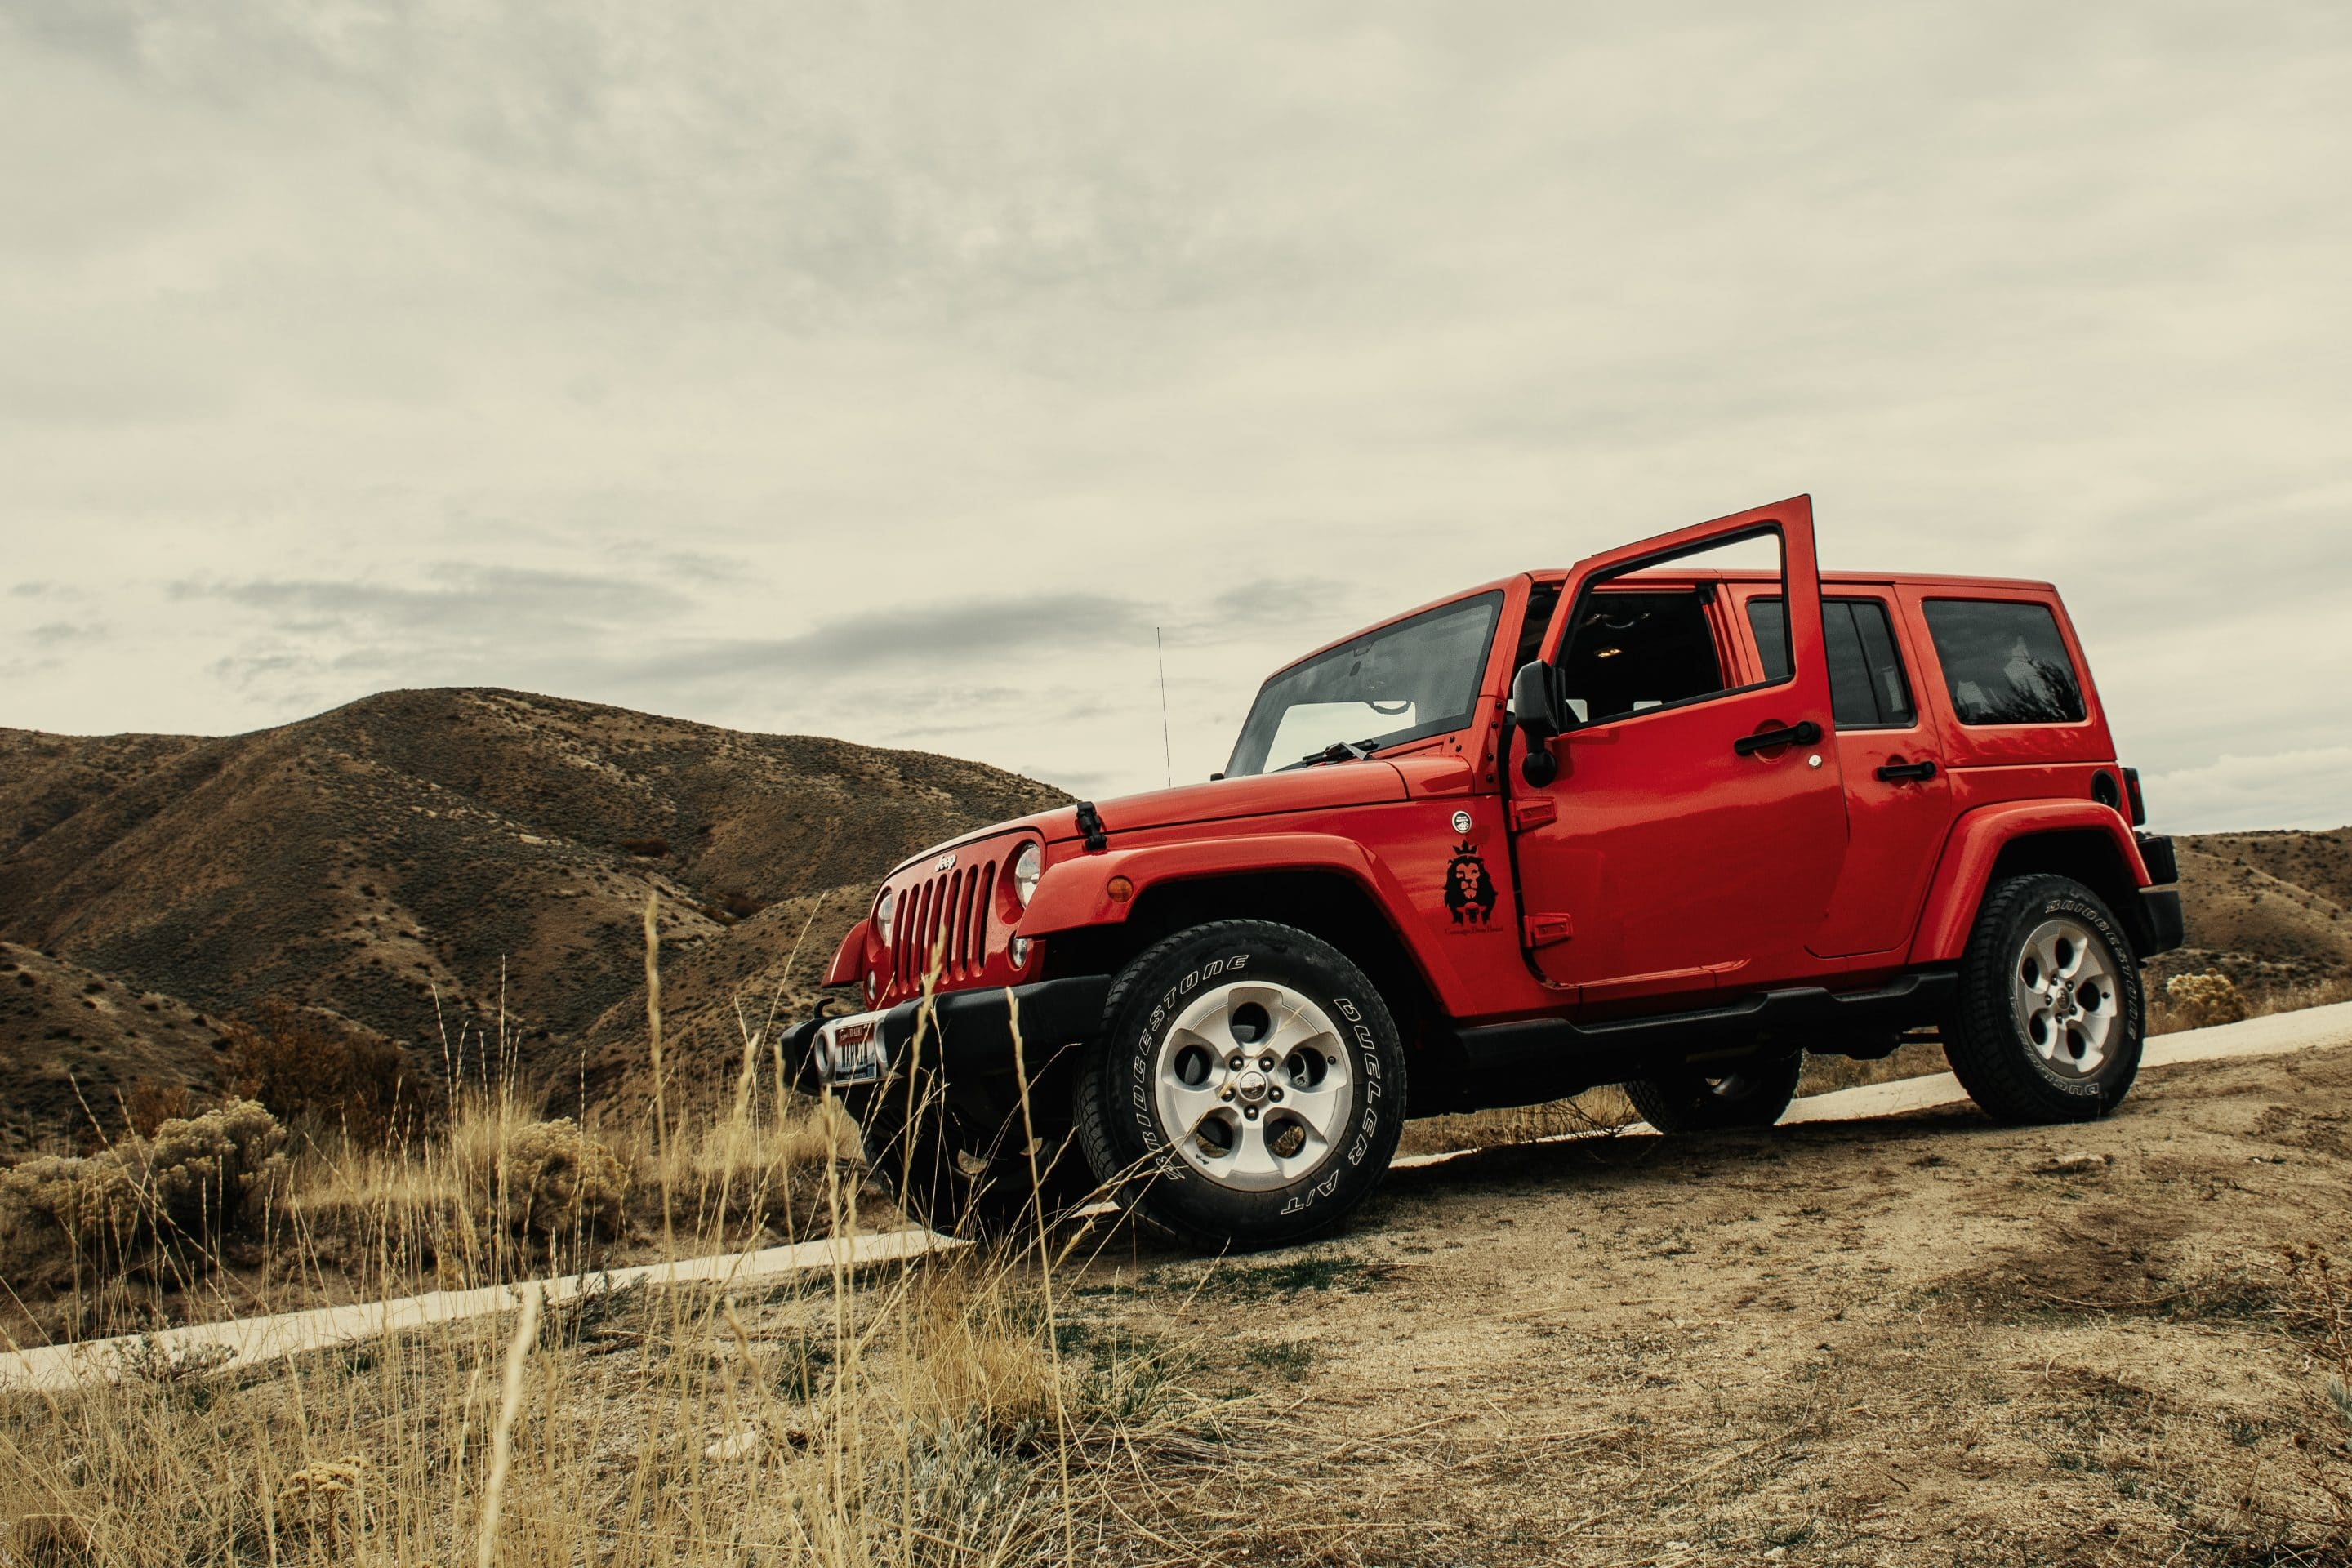 Red vehicle in the desert